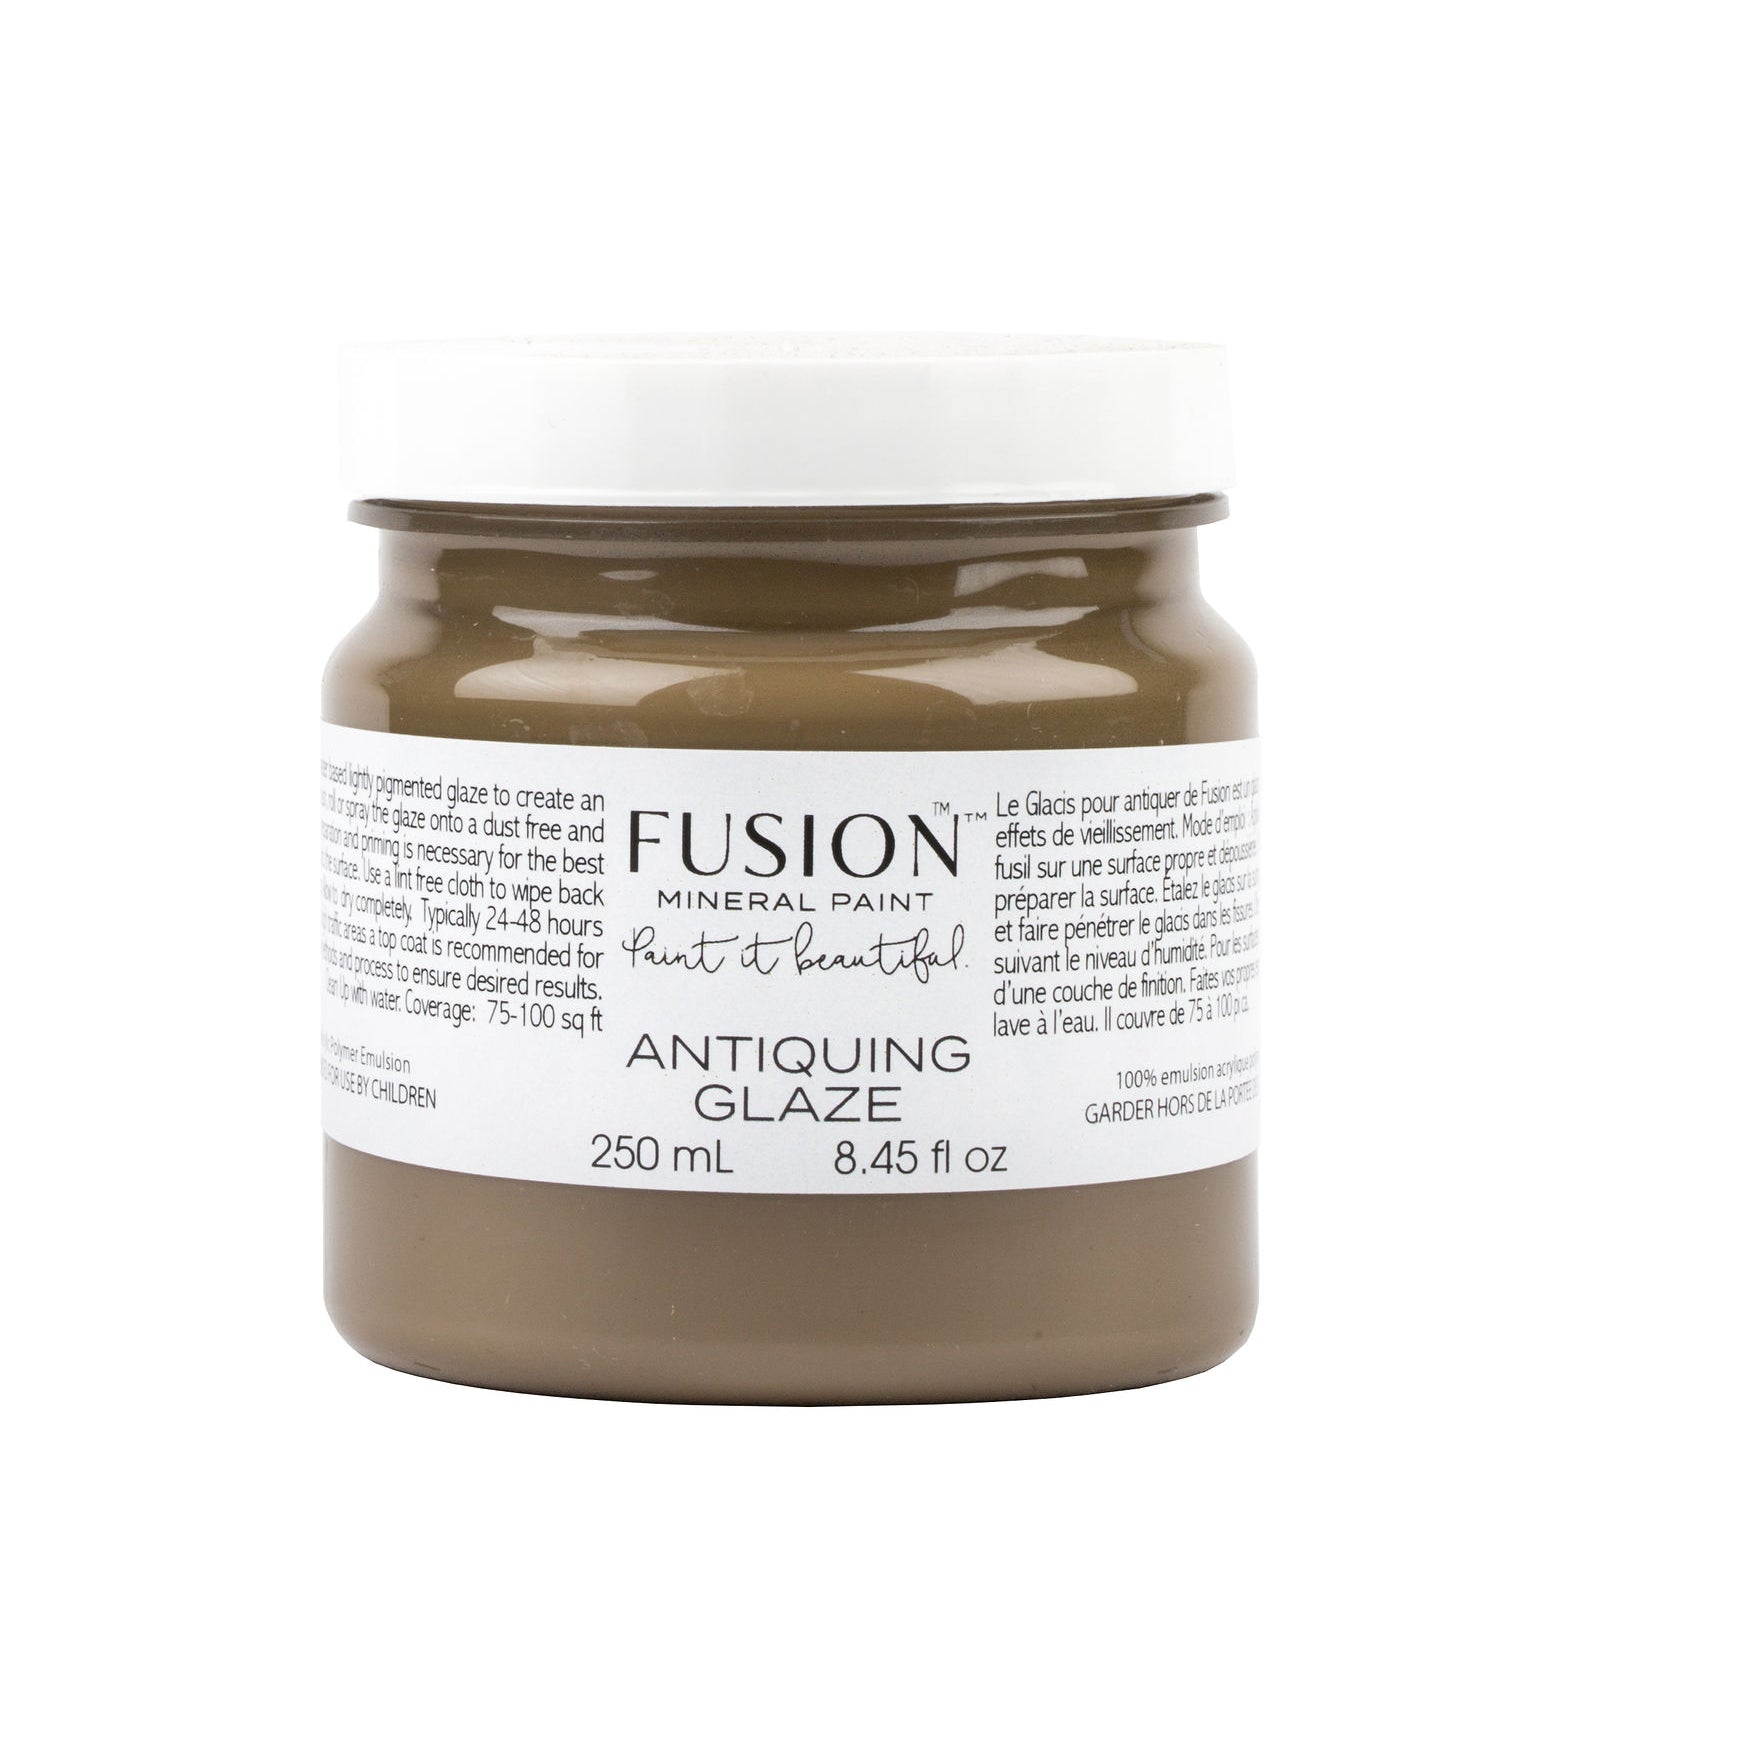 Fusion Mineral Paint: Glaze Antiquing - Lyla's: Clothing, Decor & More - Plano Boutique